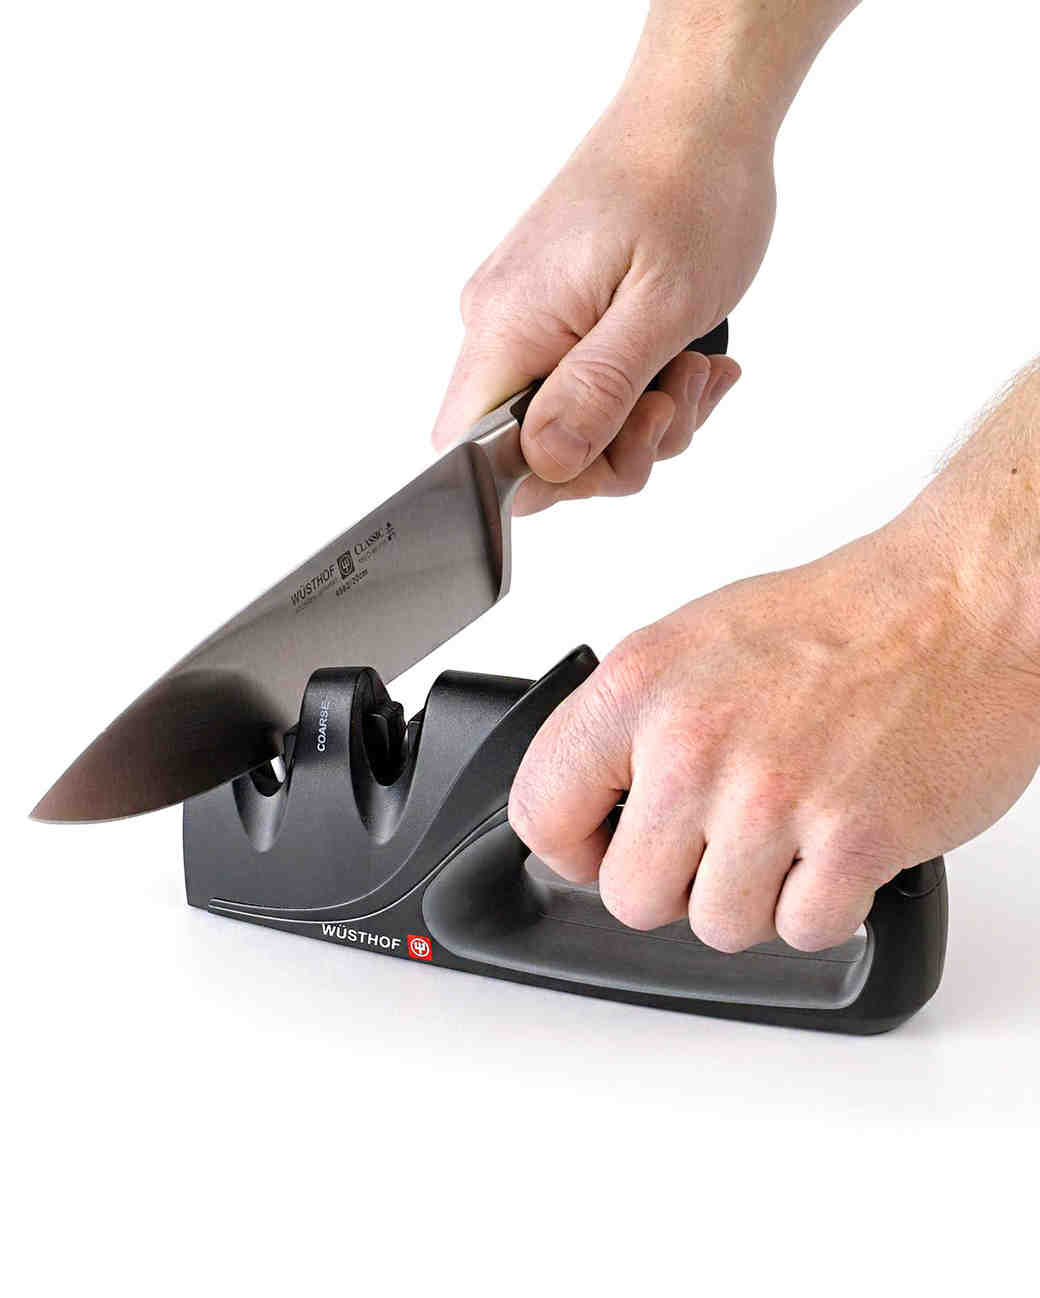 Wusthof 2-Stage Hand Held Sharpener